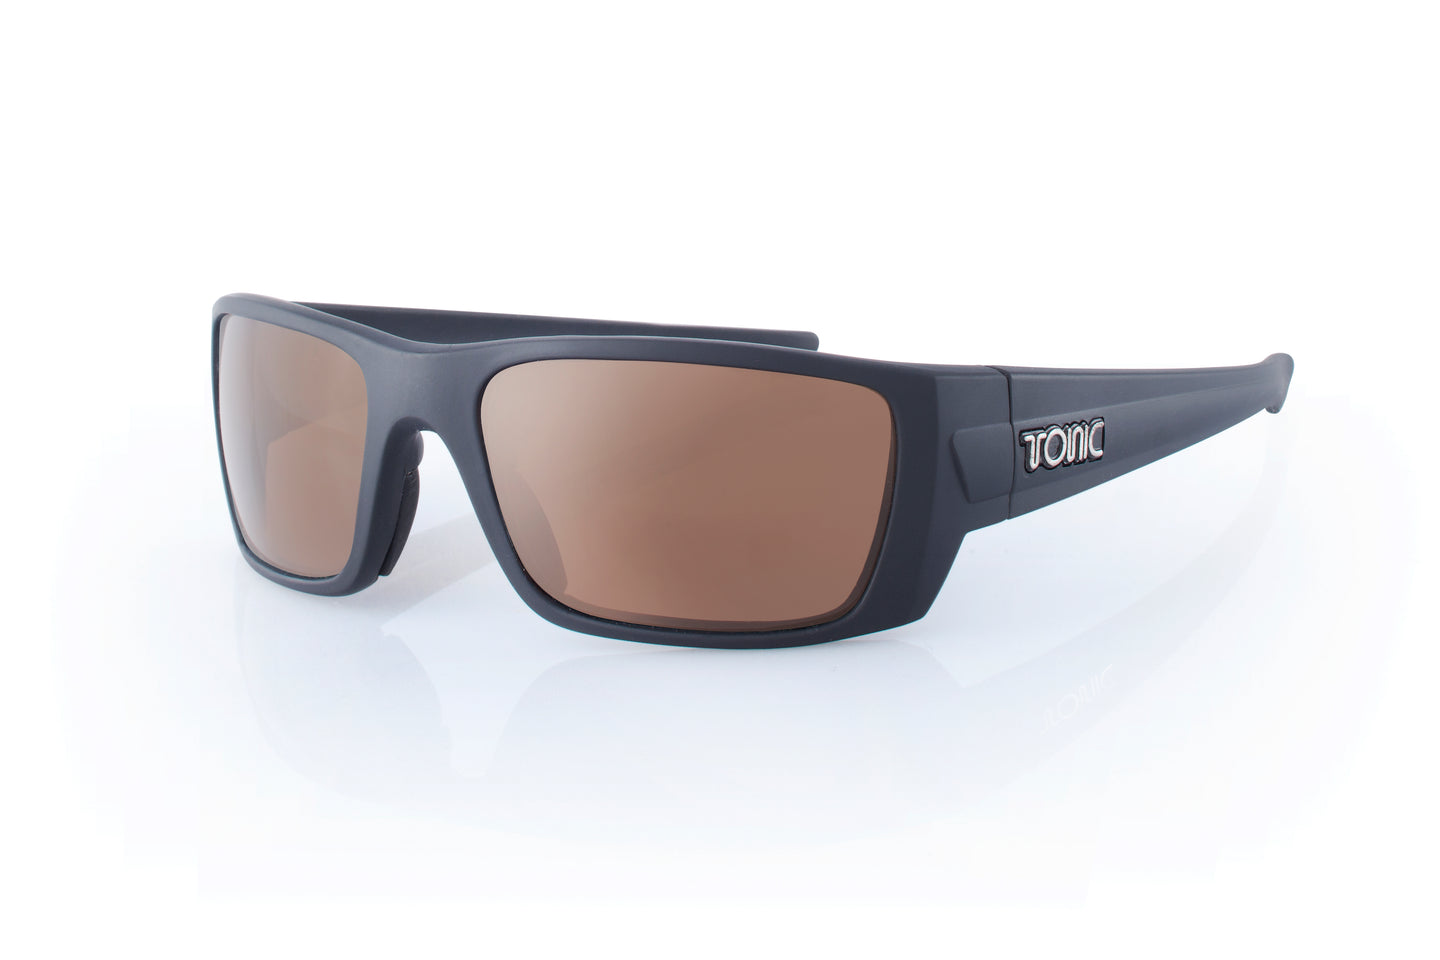 Tonic YouRanium Sunnies